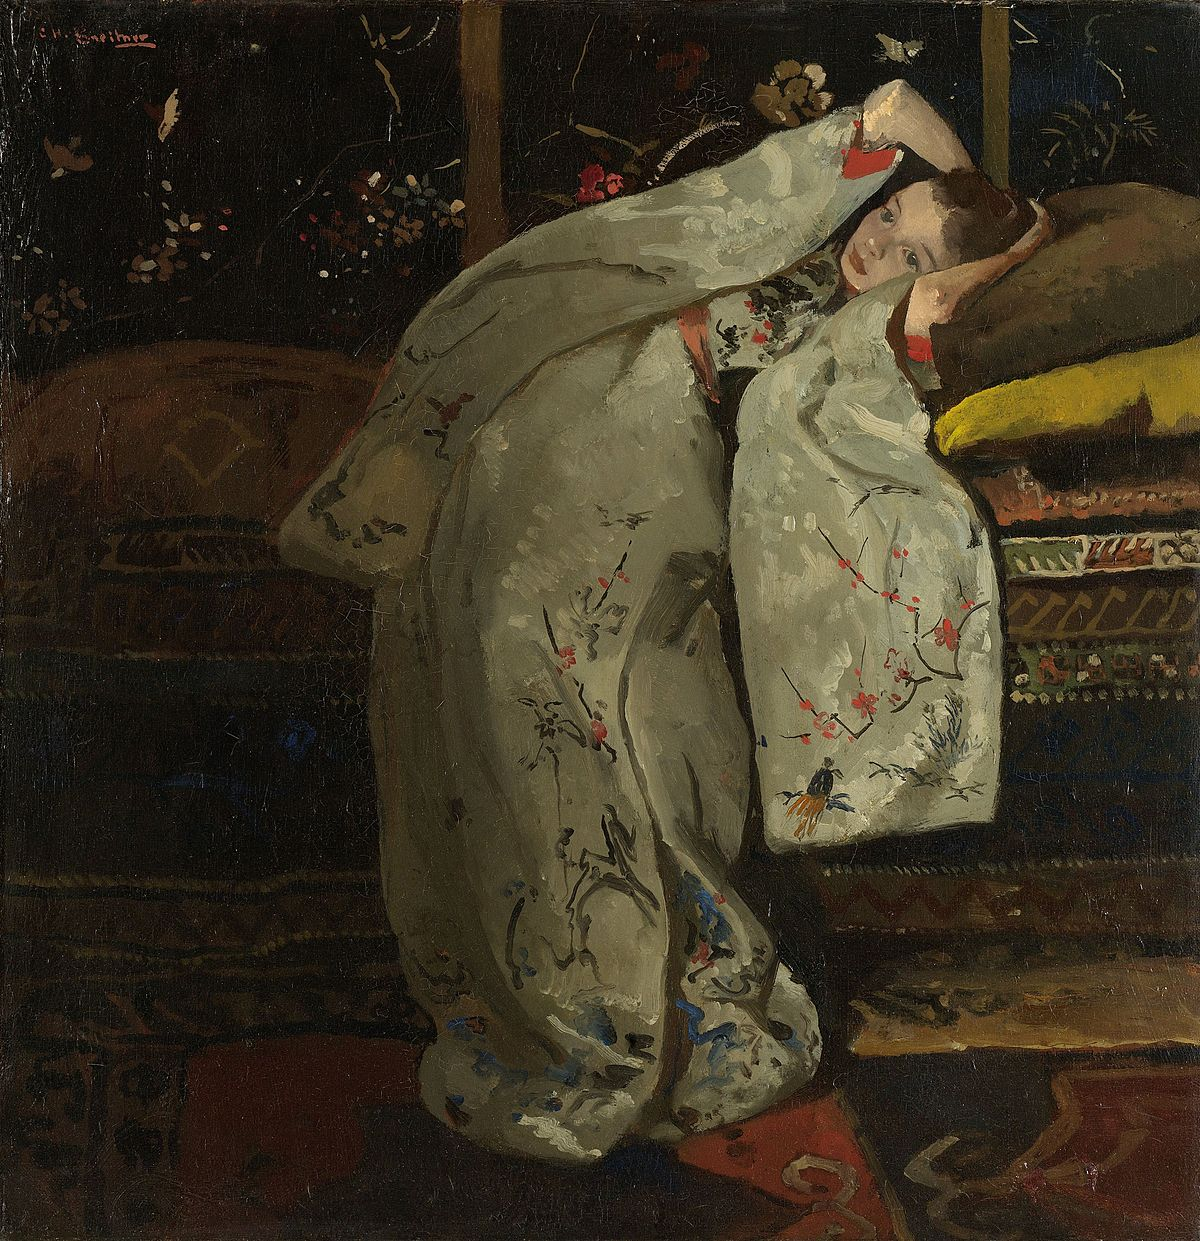 Girl In A White Kimono [1894] - George Hendrik Breitner Kiaroskuro Decor- Canvas Prints, Home Décor & Fashion